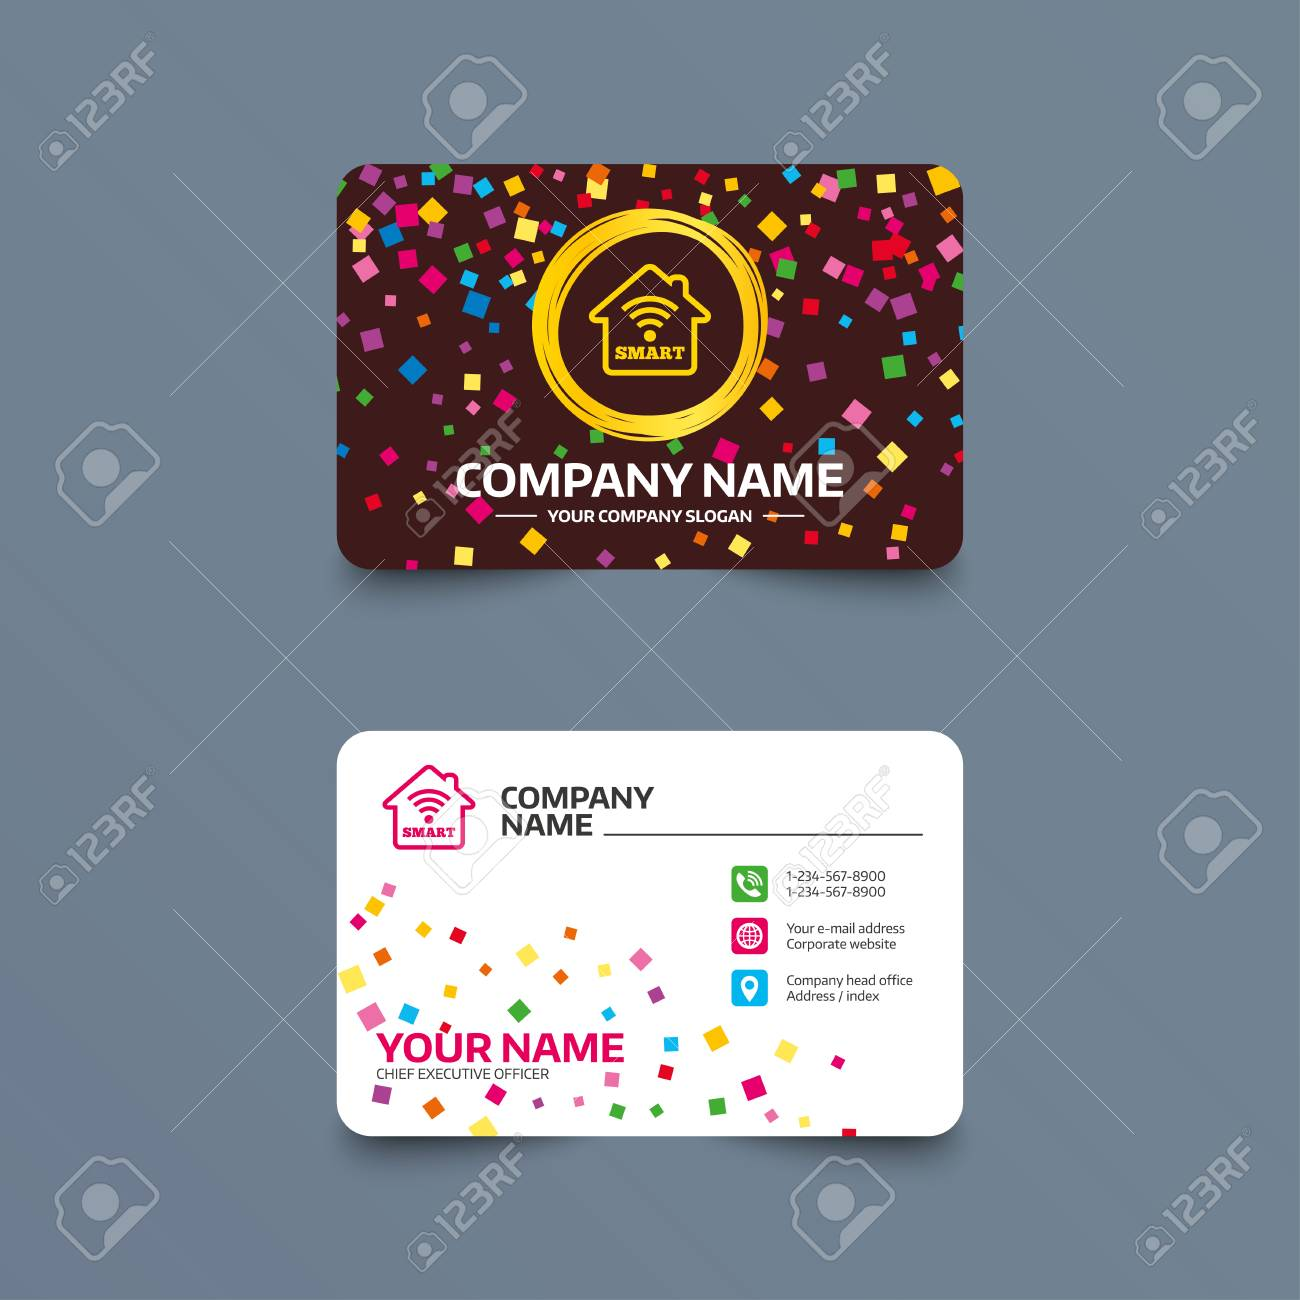 Business Card Template With Confetti Pieces. Smart Home Sign ...